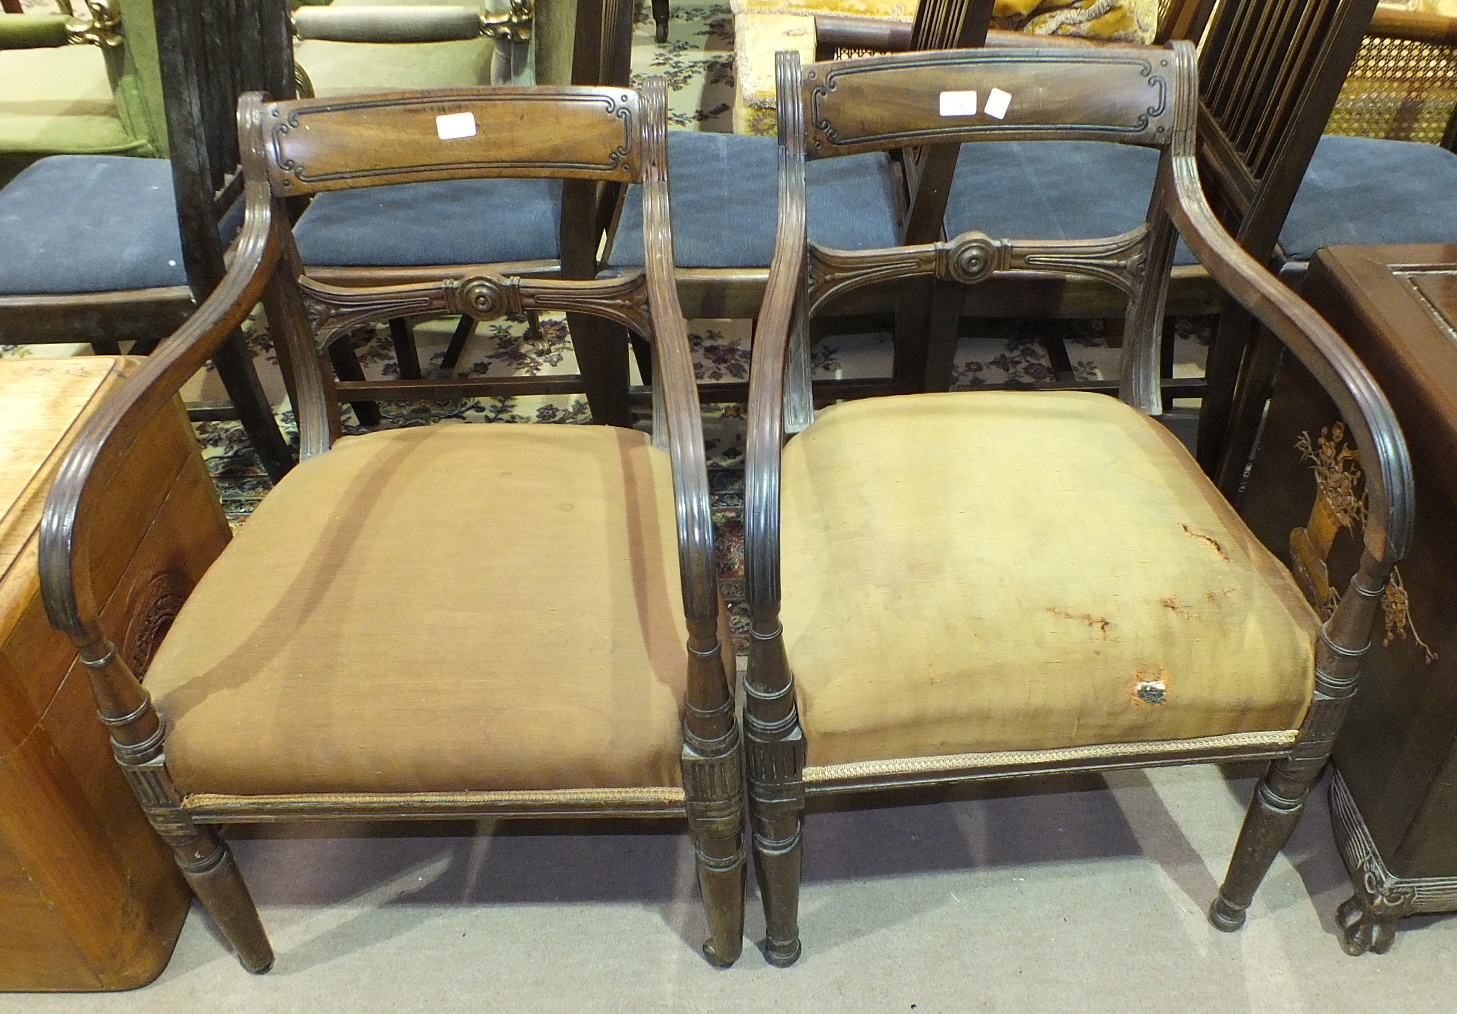 Lot 39 - A pair of Georgian mahogany carver chairs with rail backs and moulded arms, on turned front legs, (